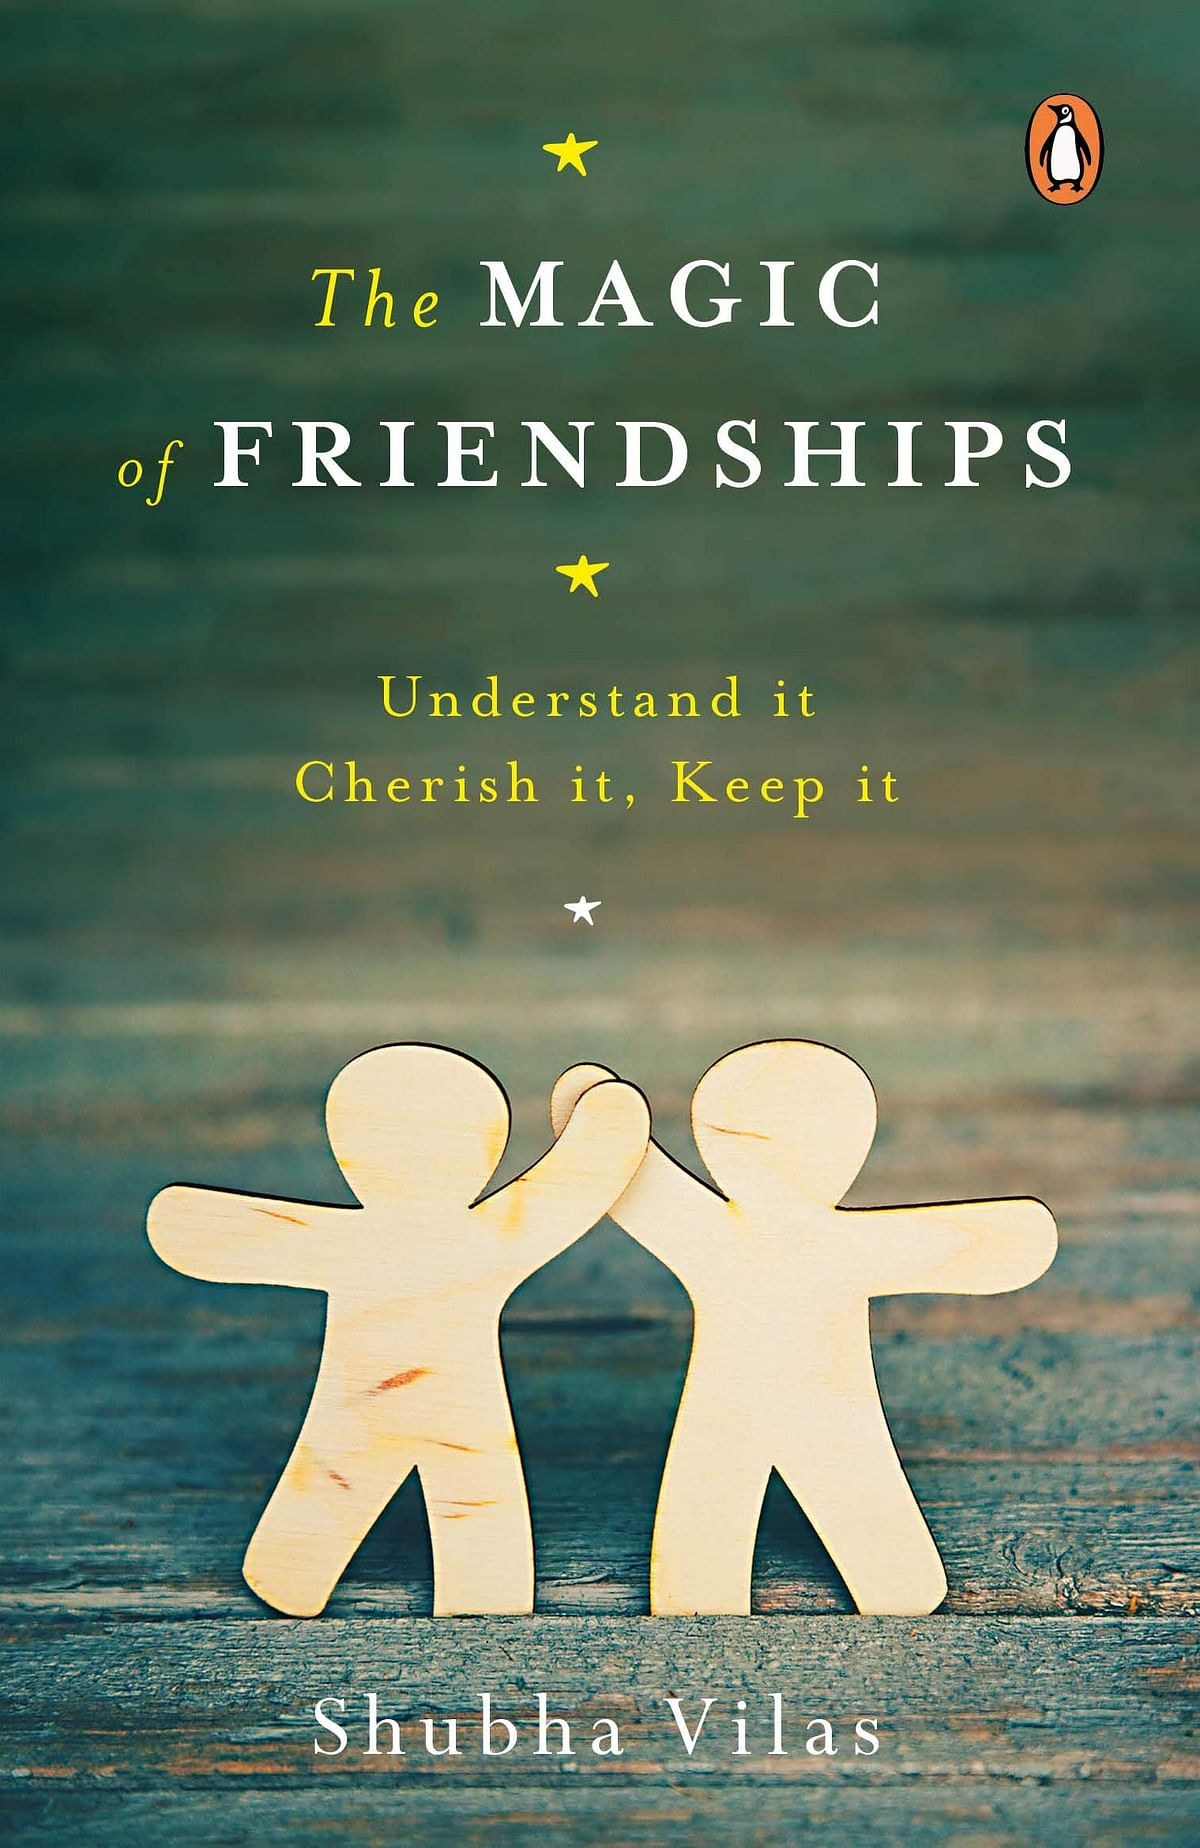 Friendship...can inspire people at a deeper level: Author Shubha Vilas